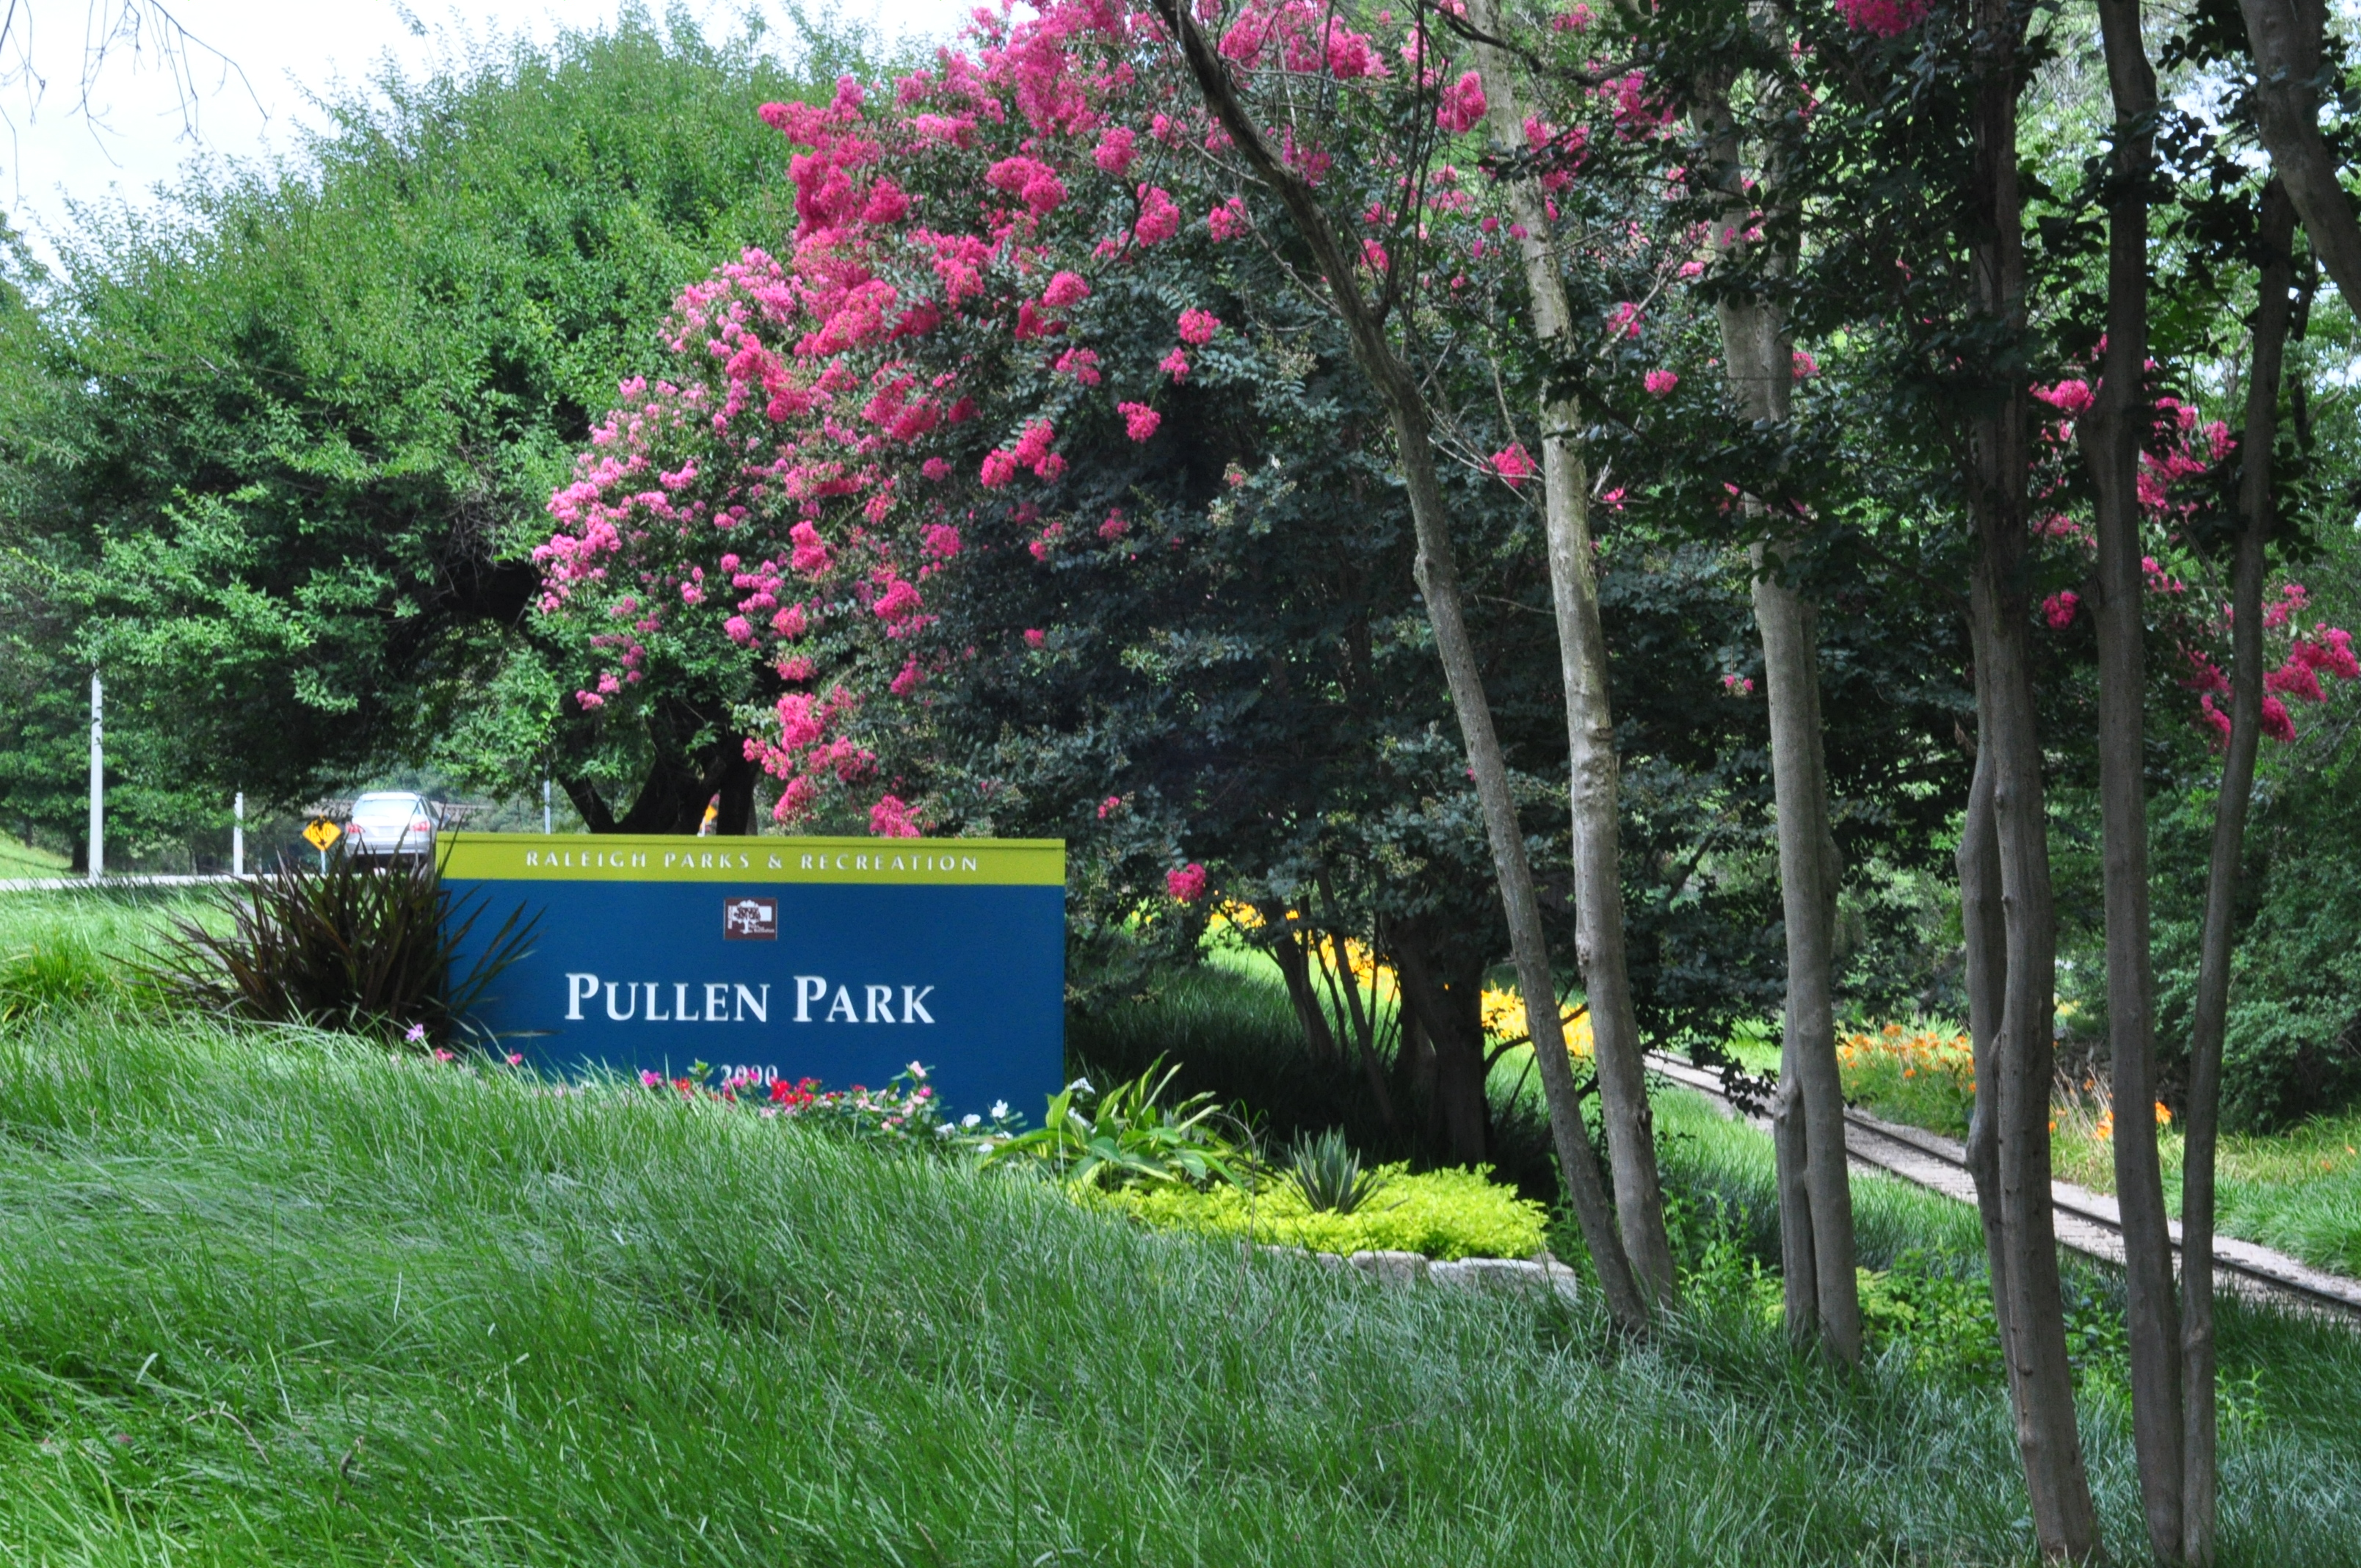 Main Entry to Pullen Park Connected to Western Blvd.